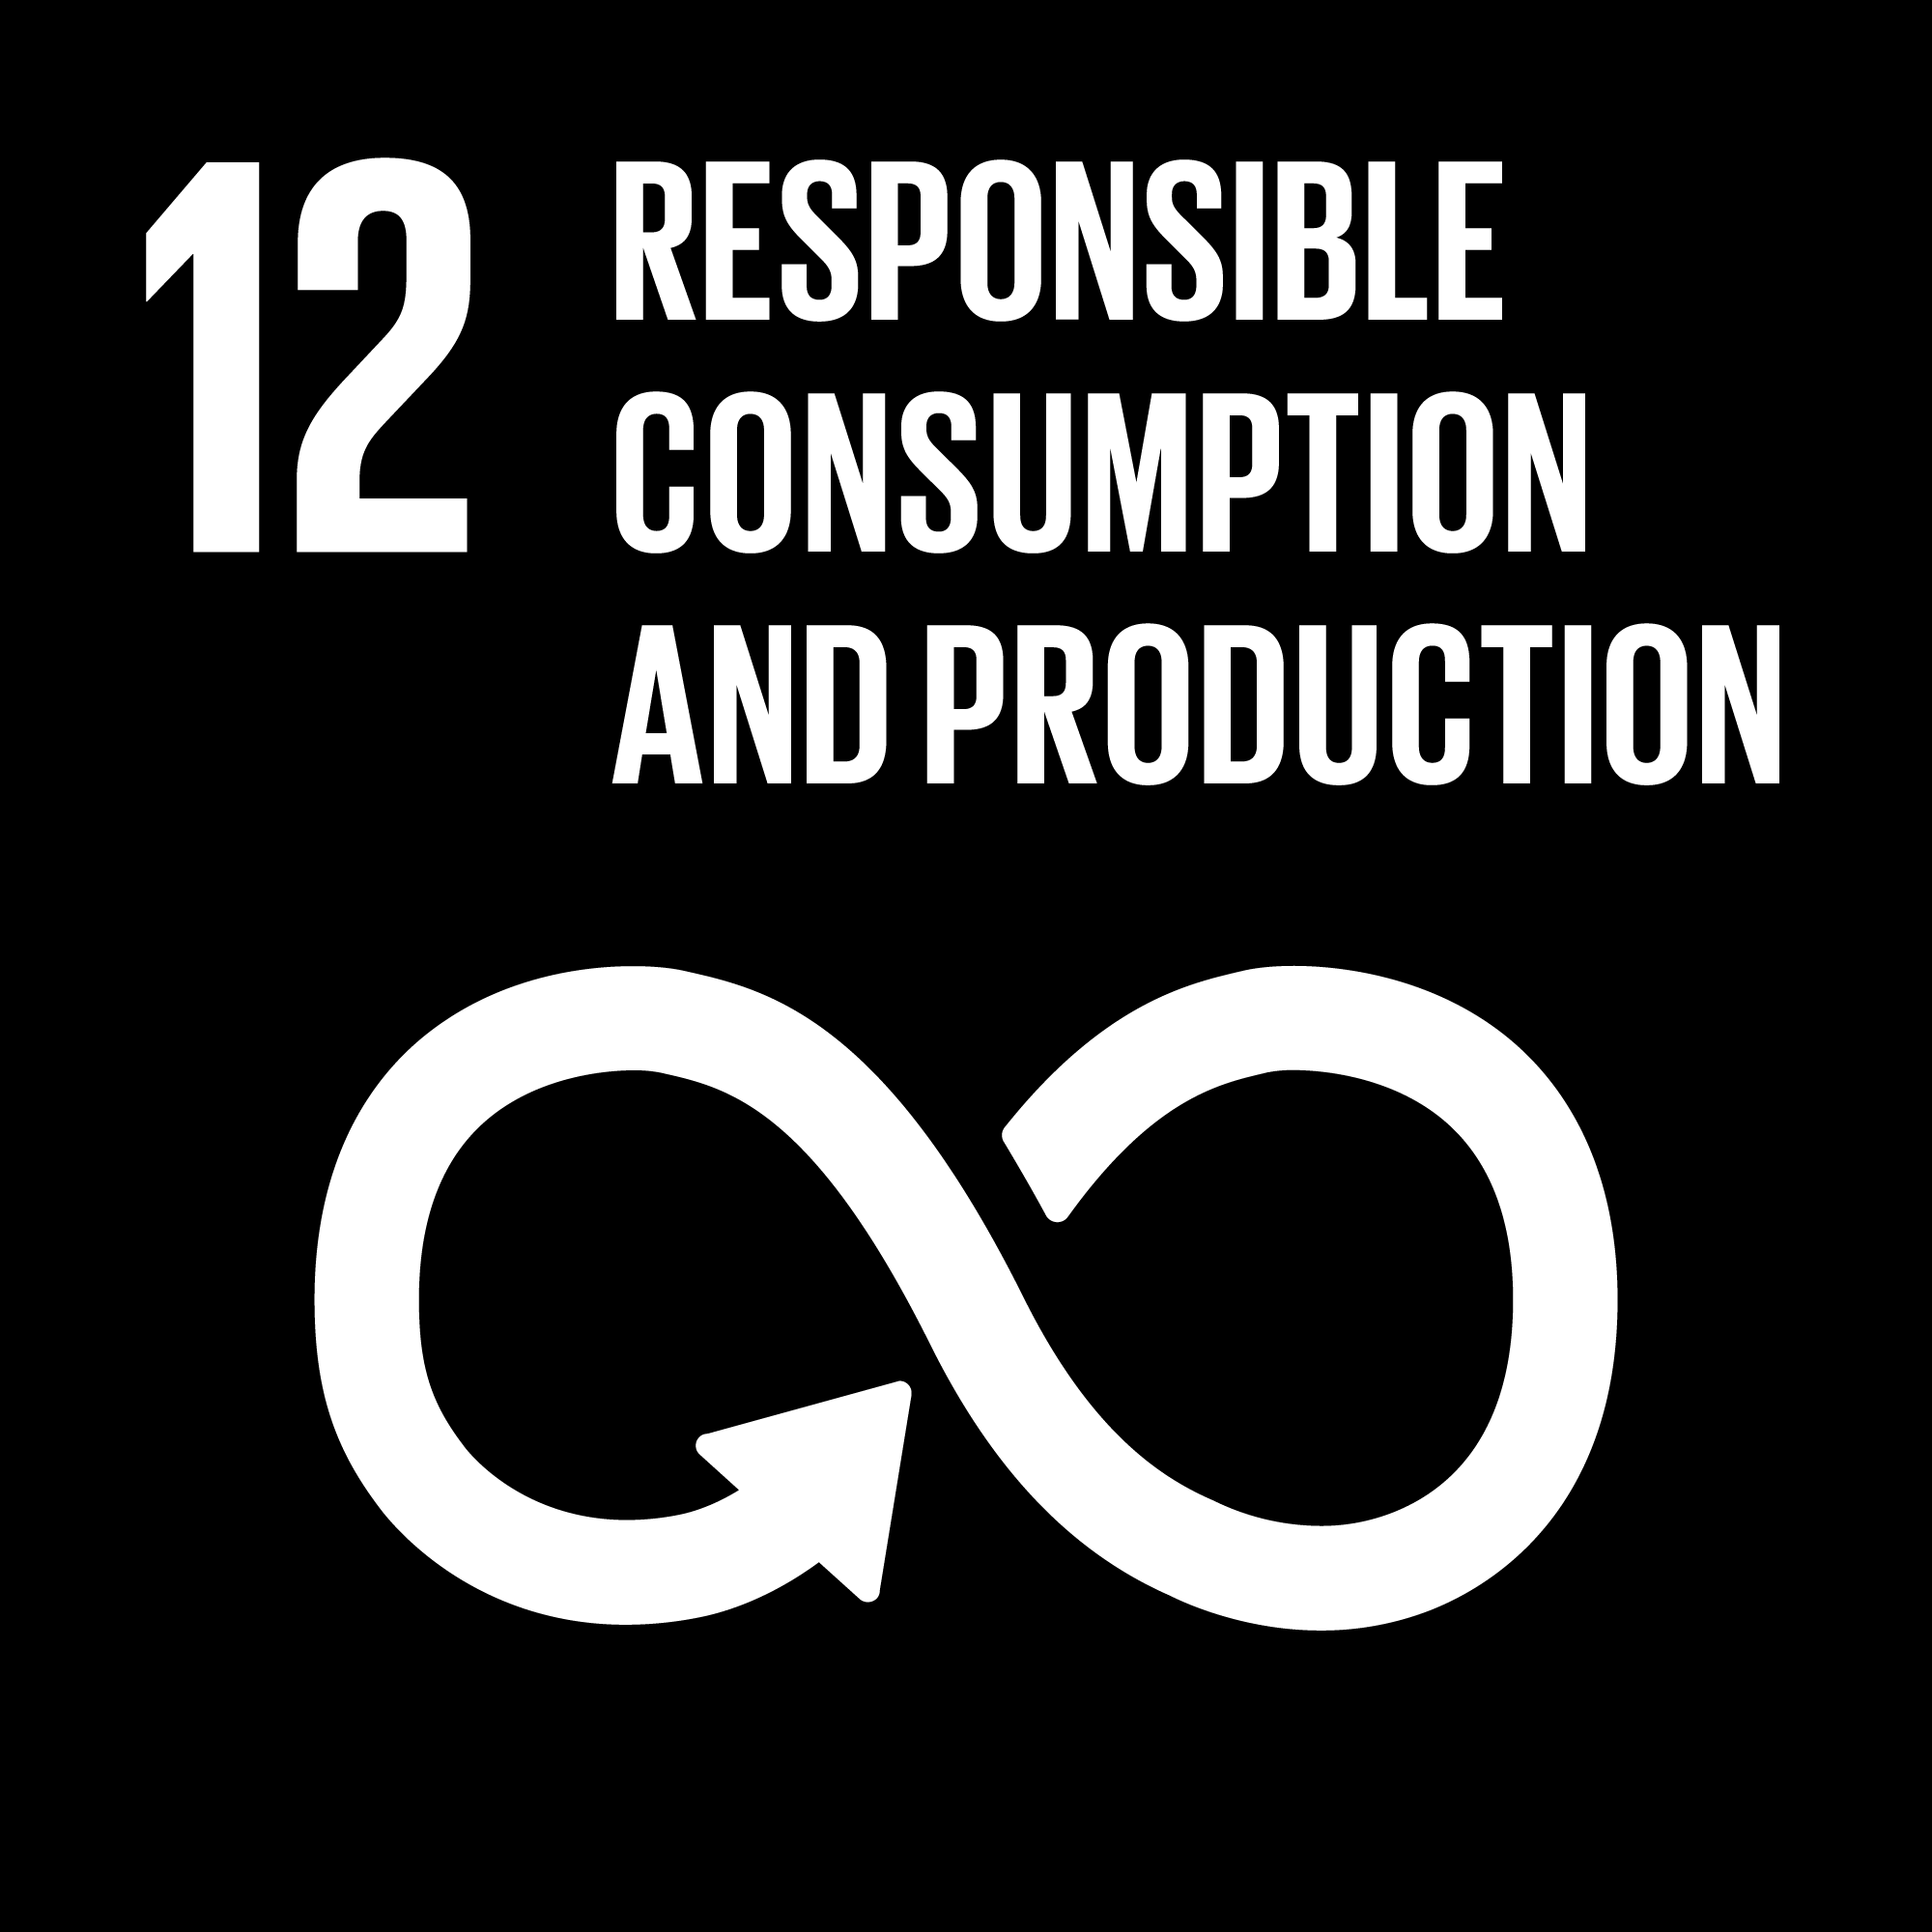 Sustainable Development Goals - 12 - Responsible Consumption and Production